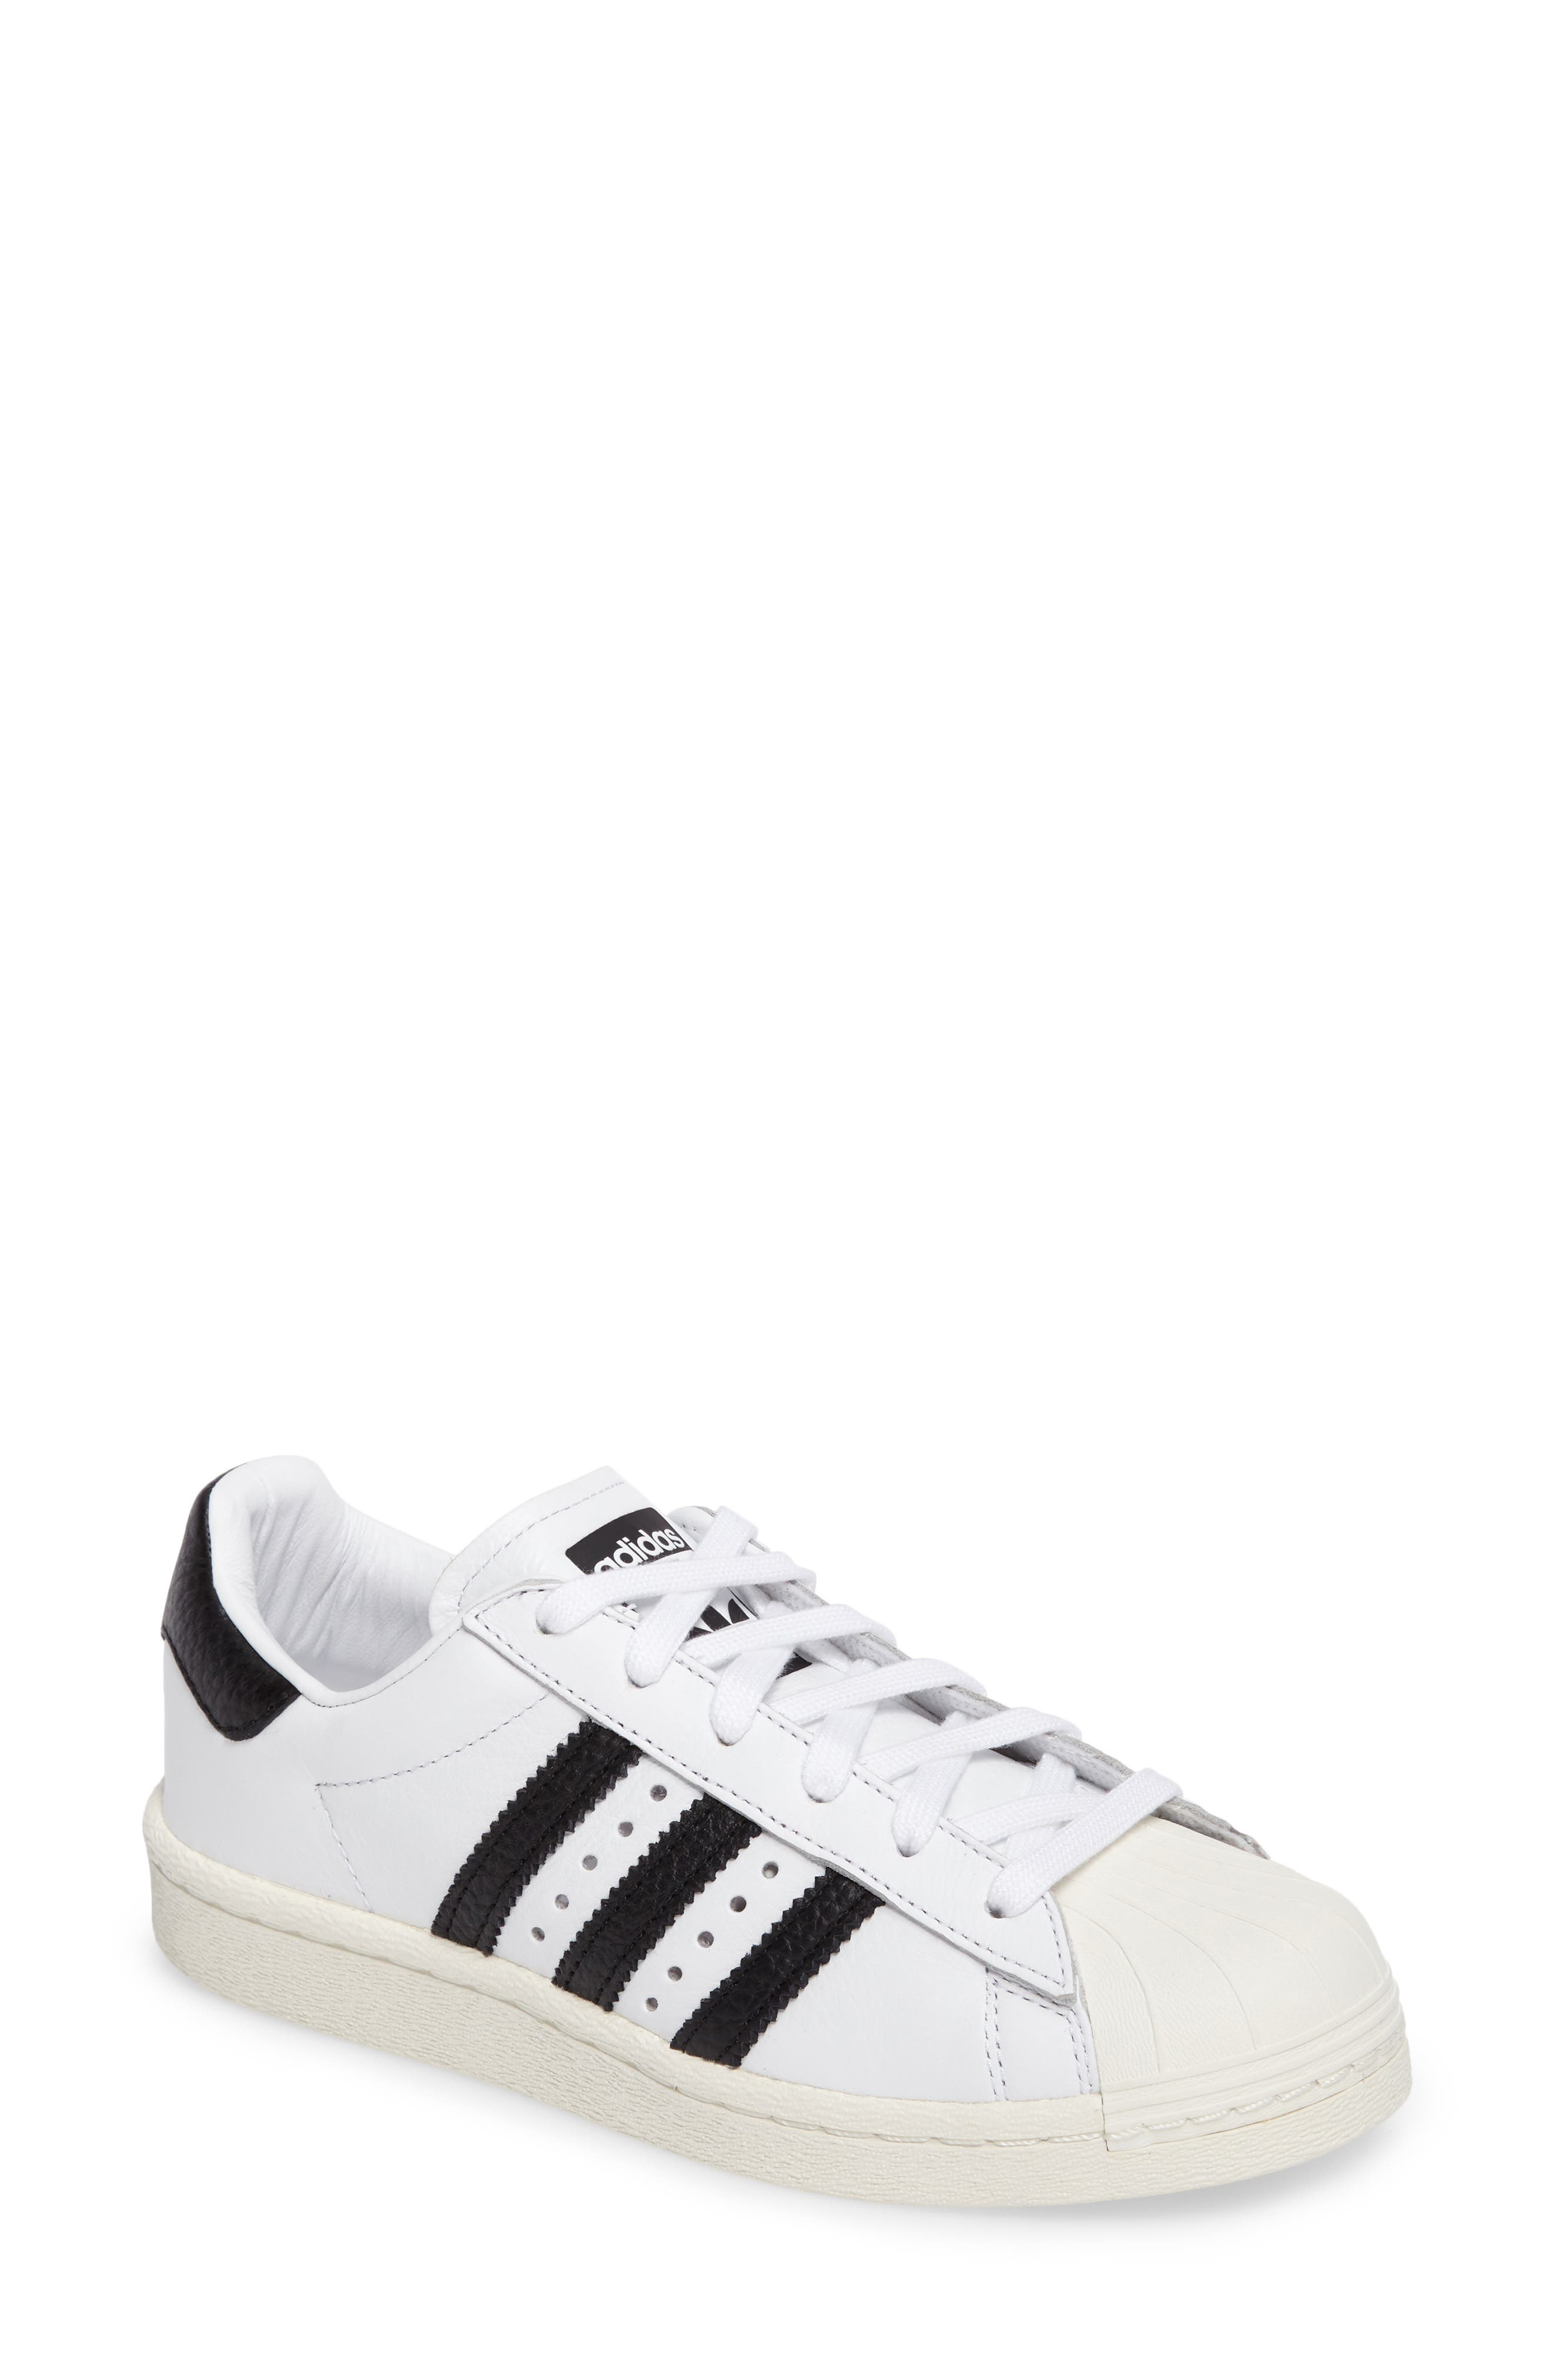 Superstar Boost Sneaker,                         Main,                         color, 100